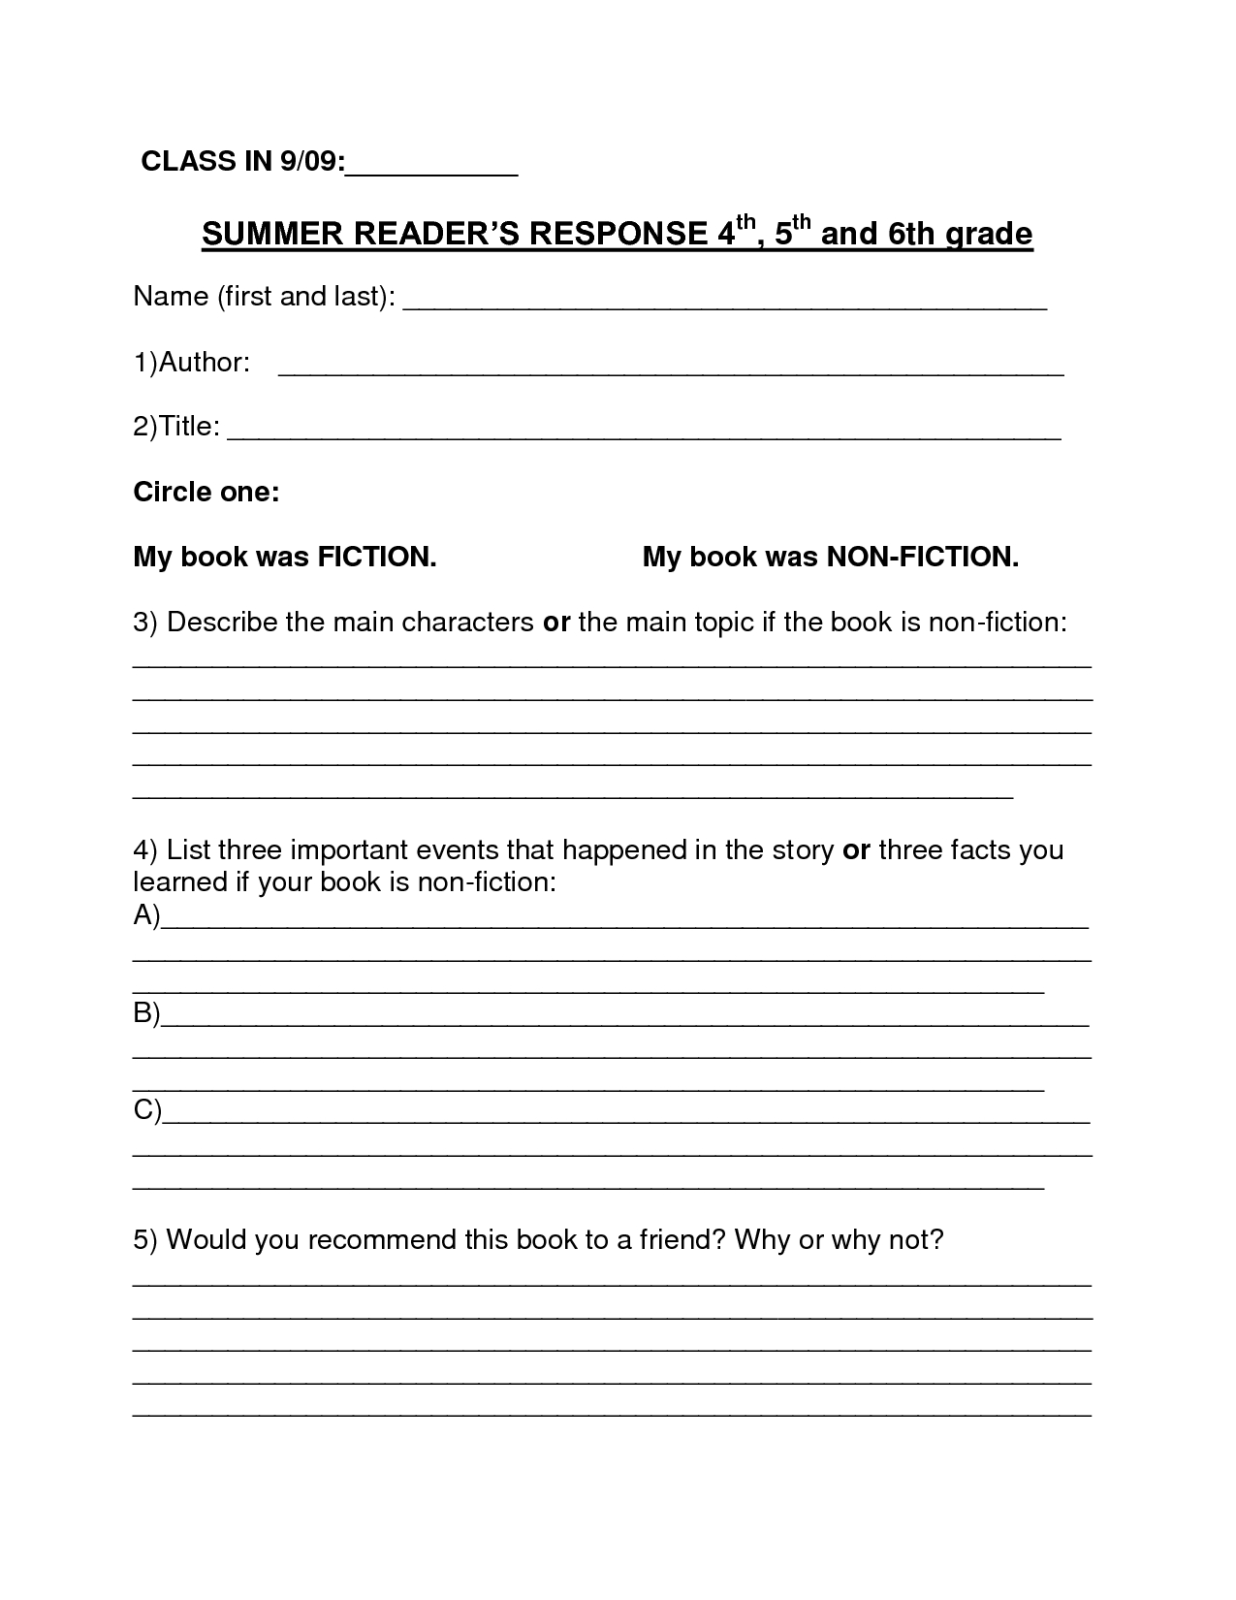 Book Report Template | Summer Book Report 4Th  6Th Grade Intended For 4Th Grade Book Report Template